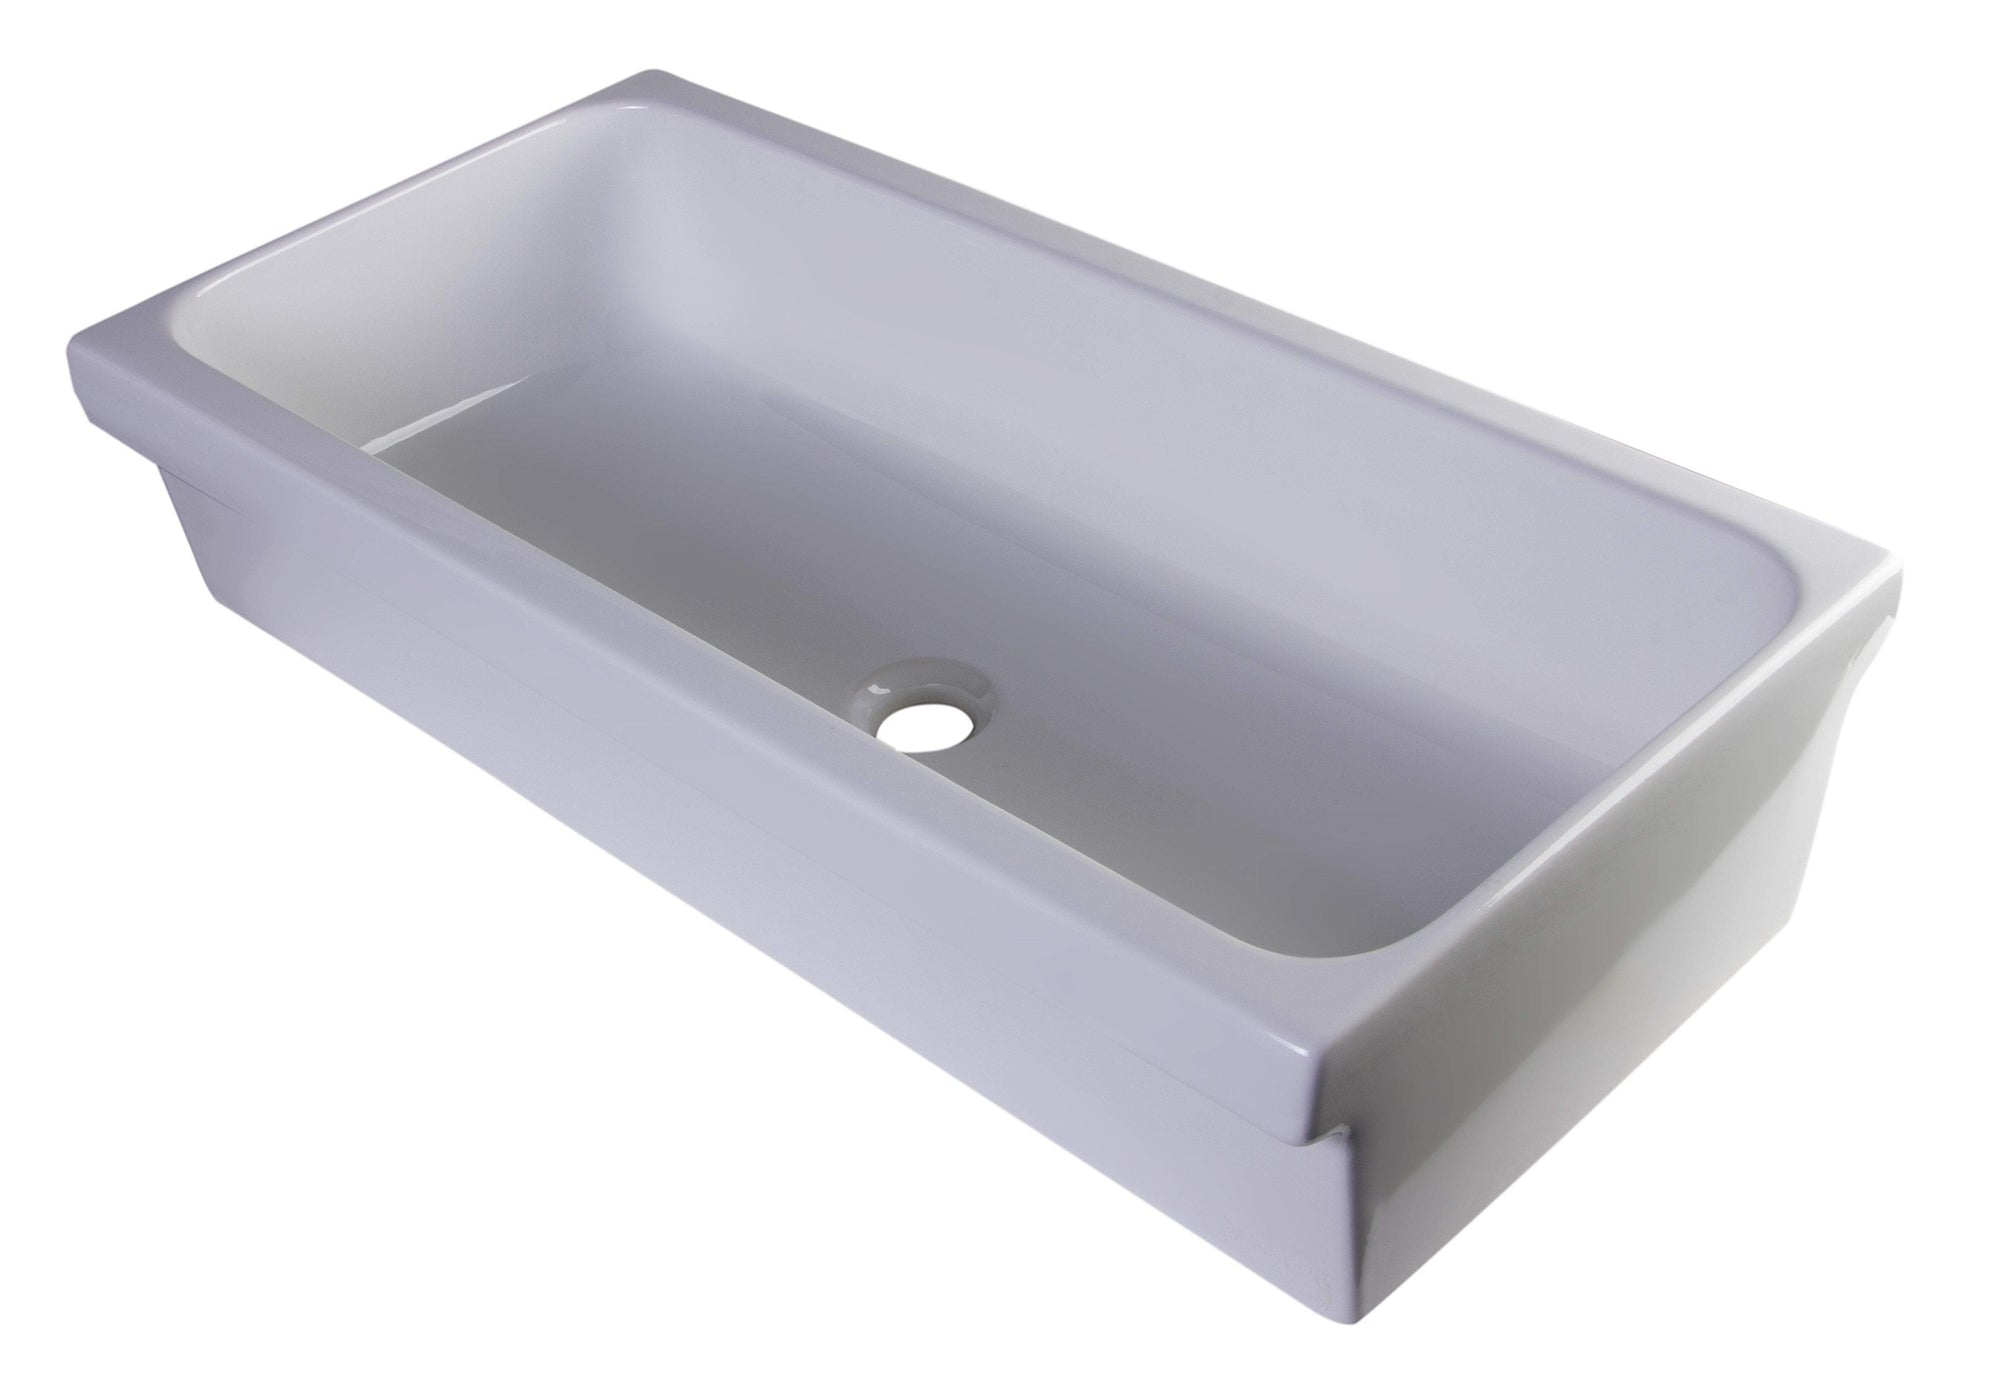 "36"" White Above Mount Porcelain Bath Trough Sink"